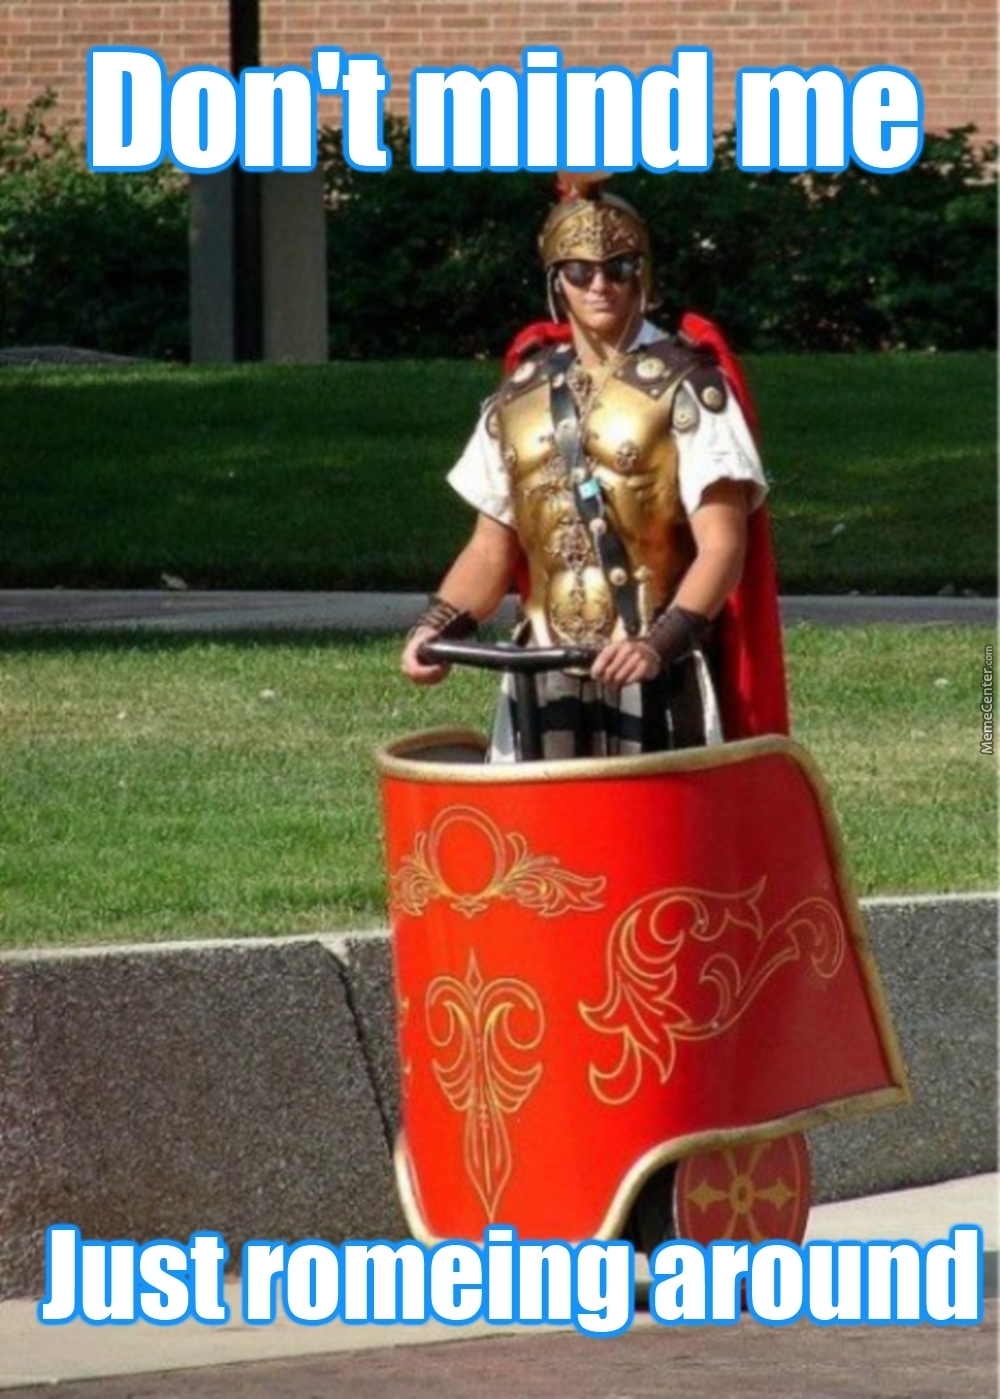 No,i Will Mind The Fact That I Don't Have That Awesome Segway